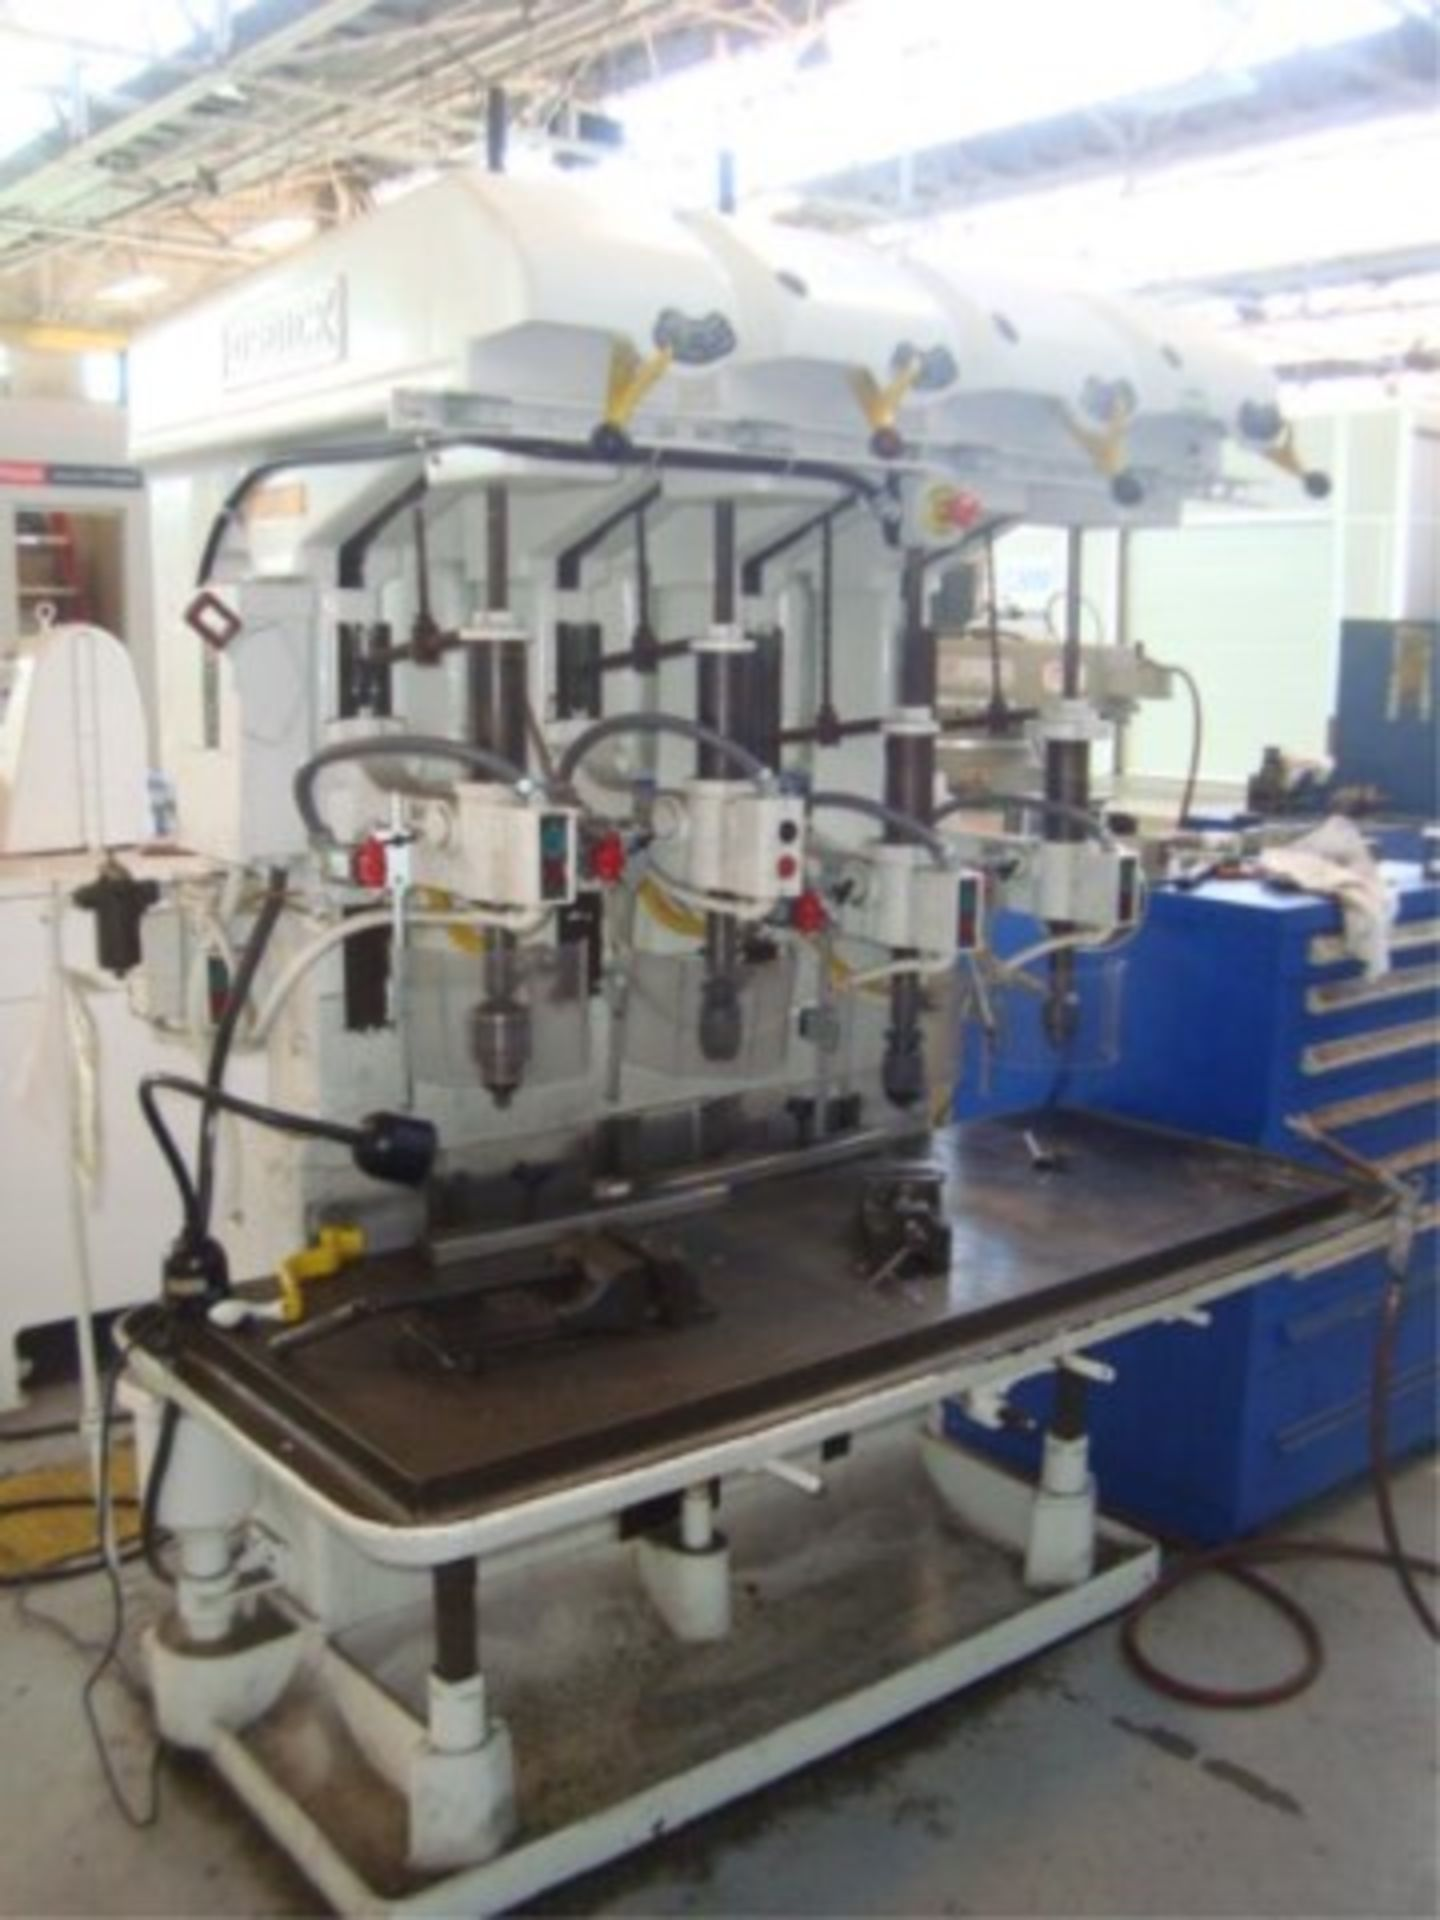 Lot 145 - 4-Spindle Inline Drill Press